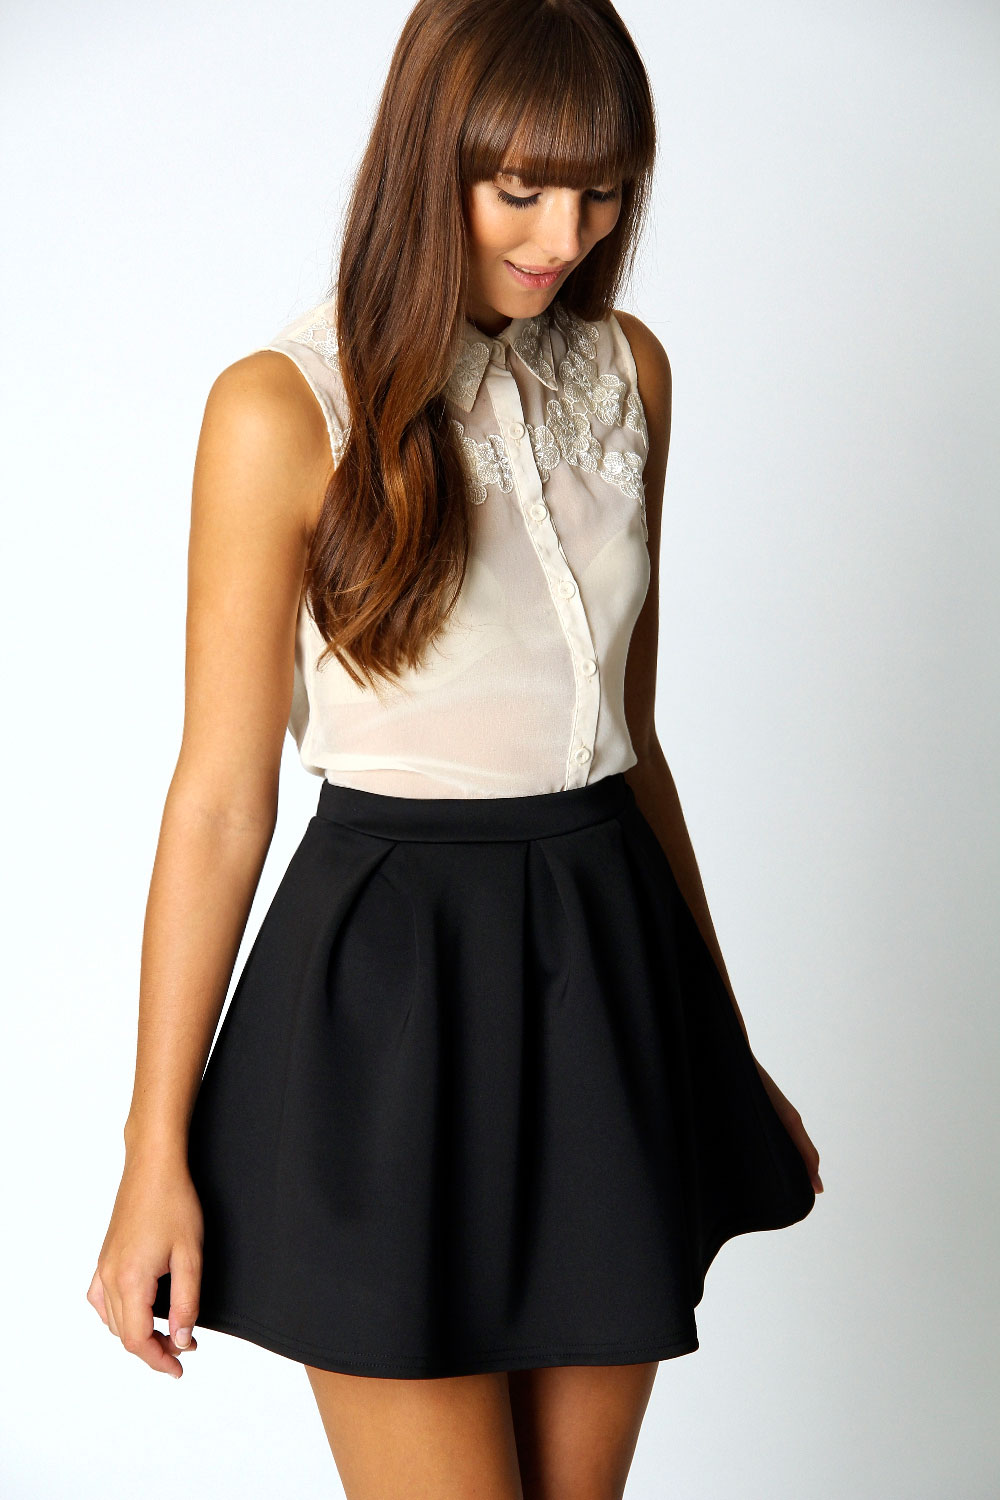 Boohoo-Kate-Box-Pleat-Skater-Hip-Length-Skirt thumbnail 3